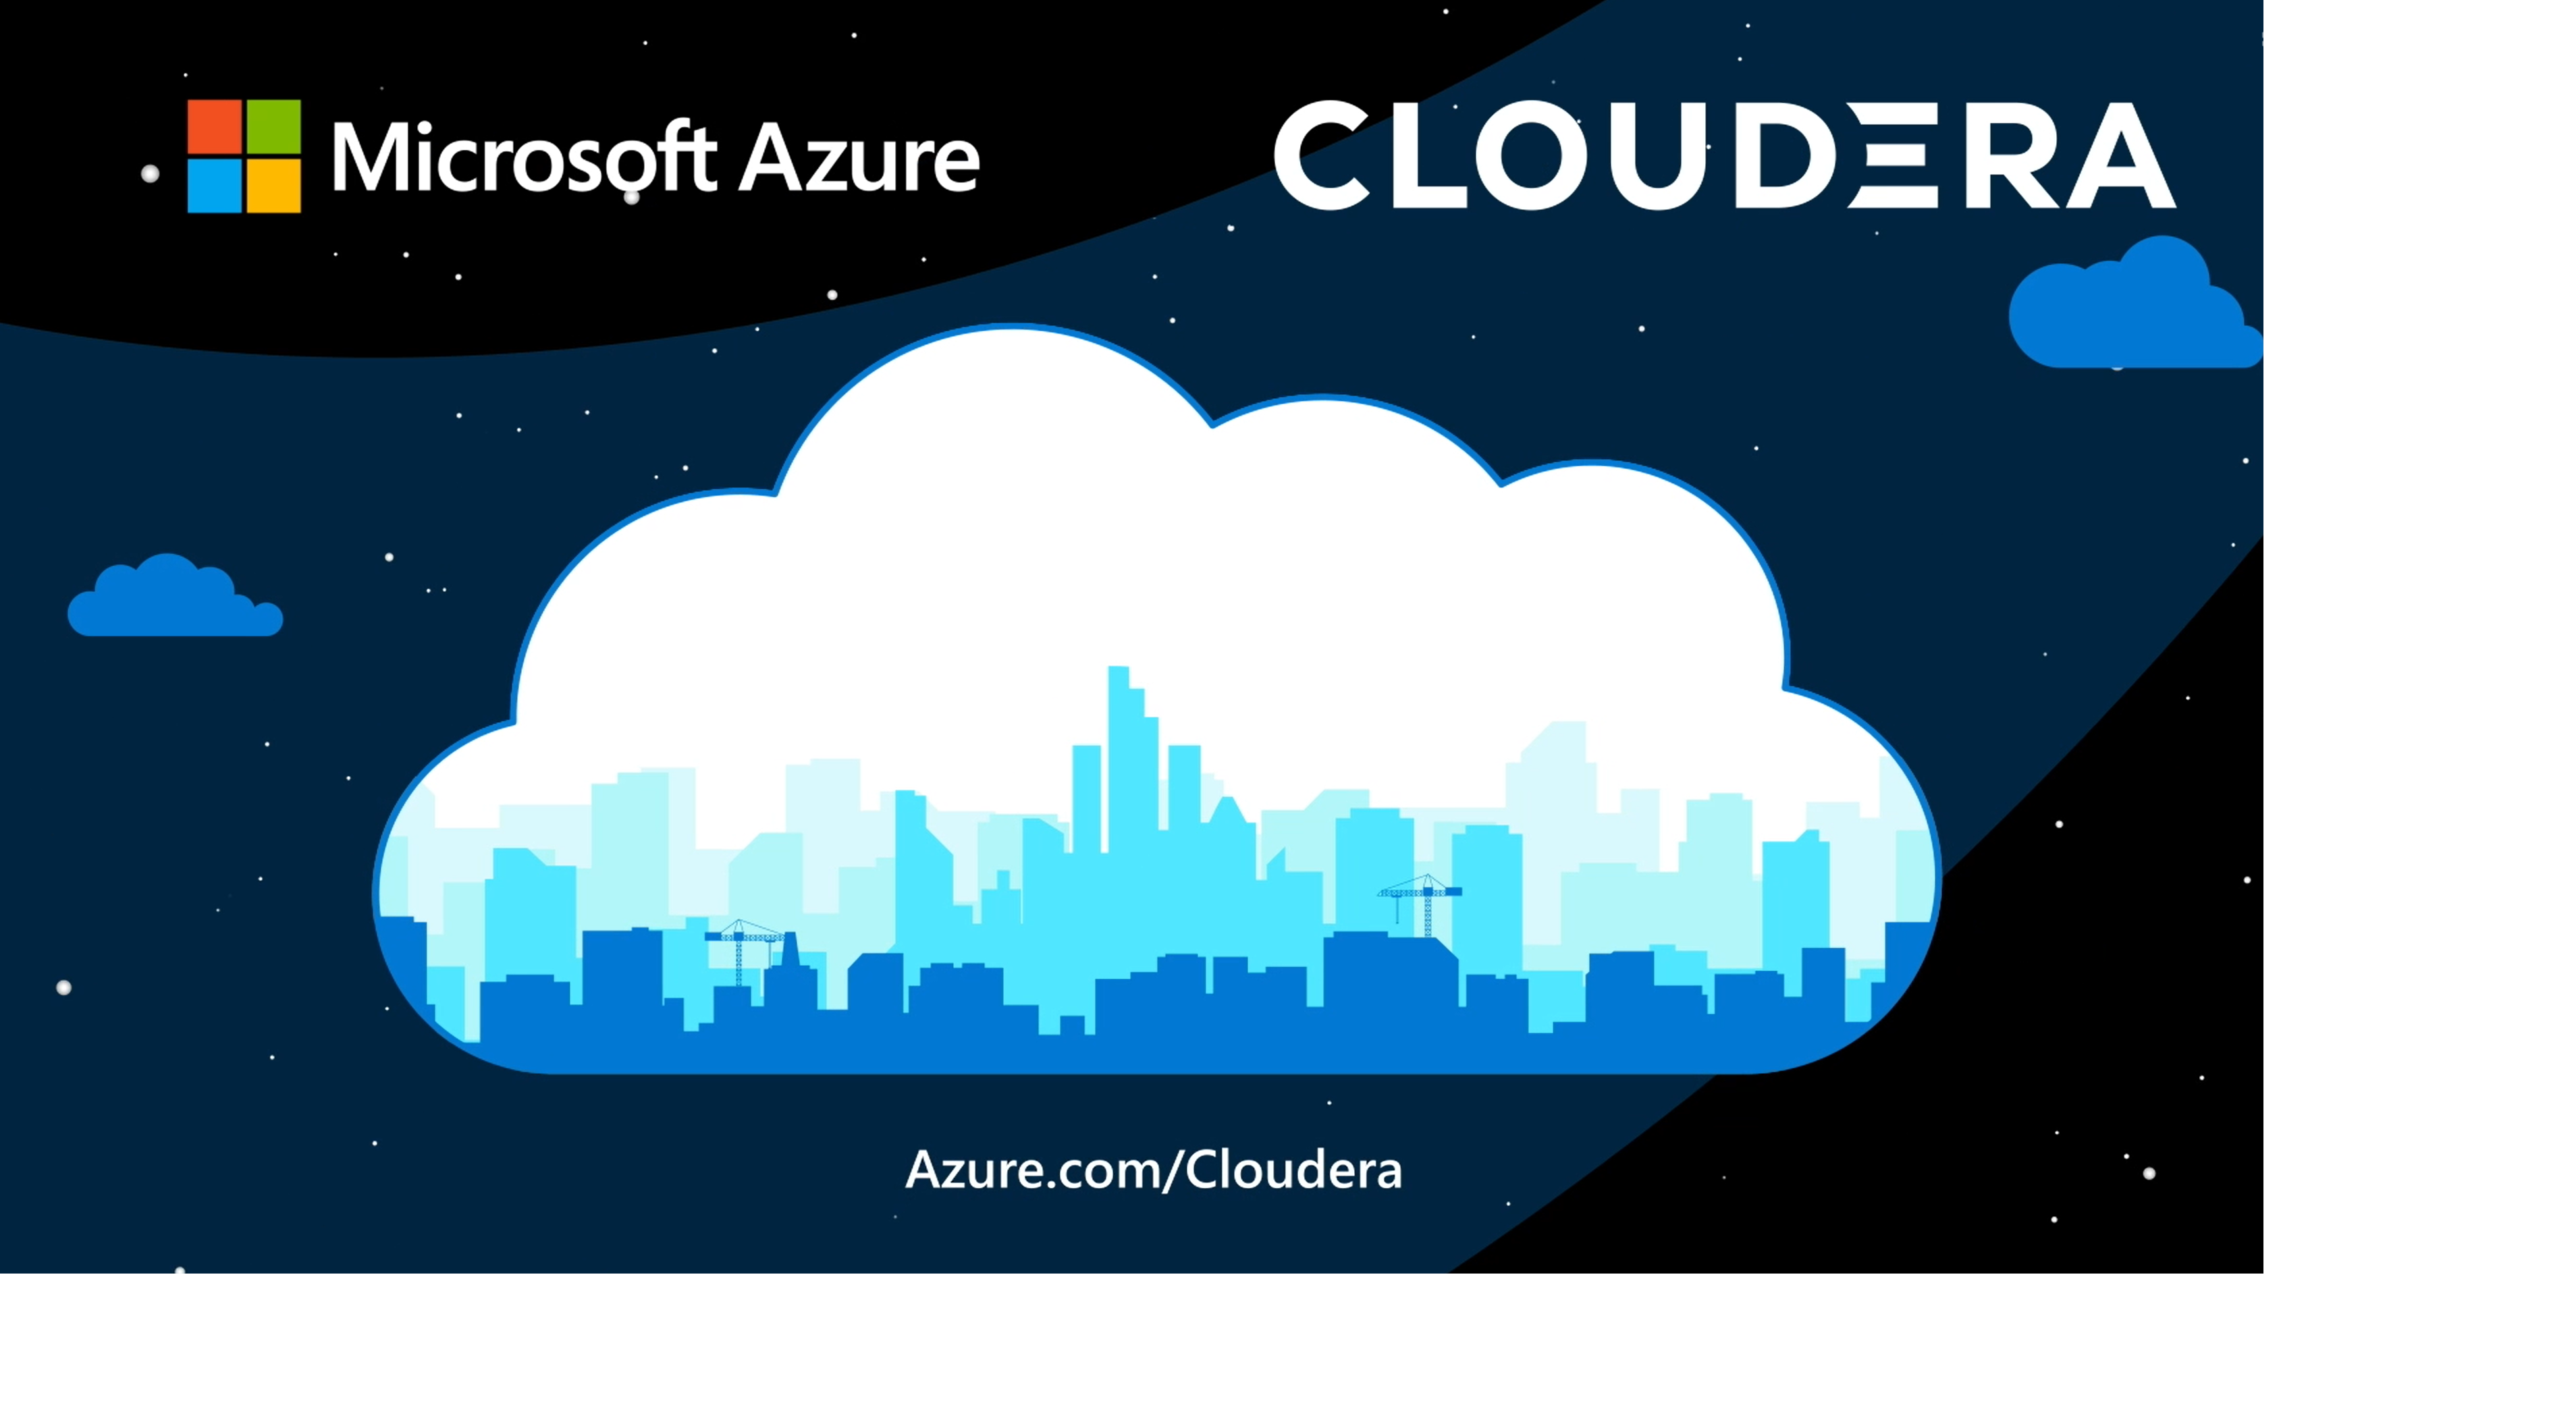 Cloudera on Azure Overview